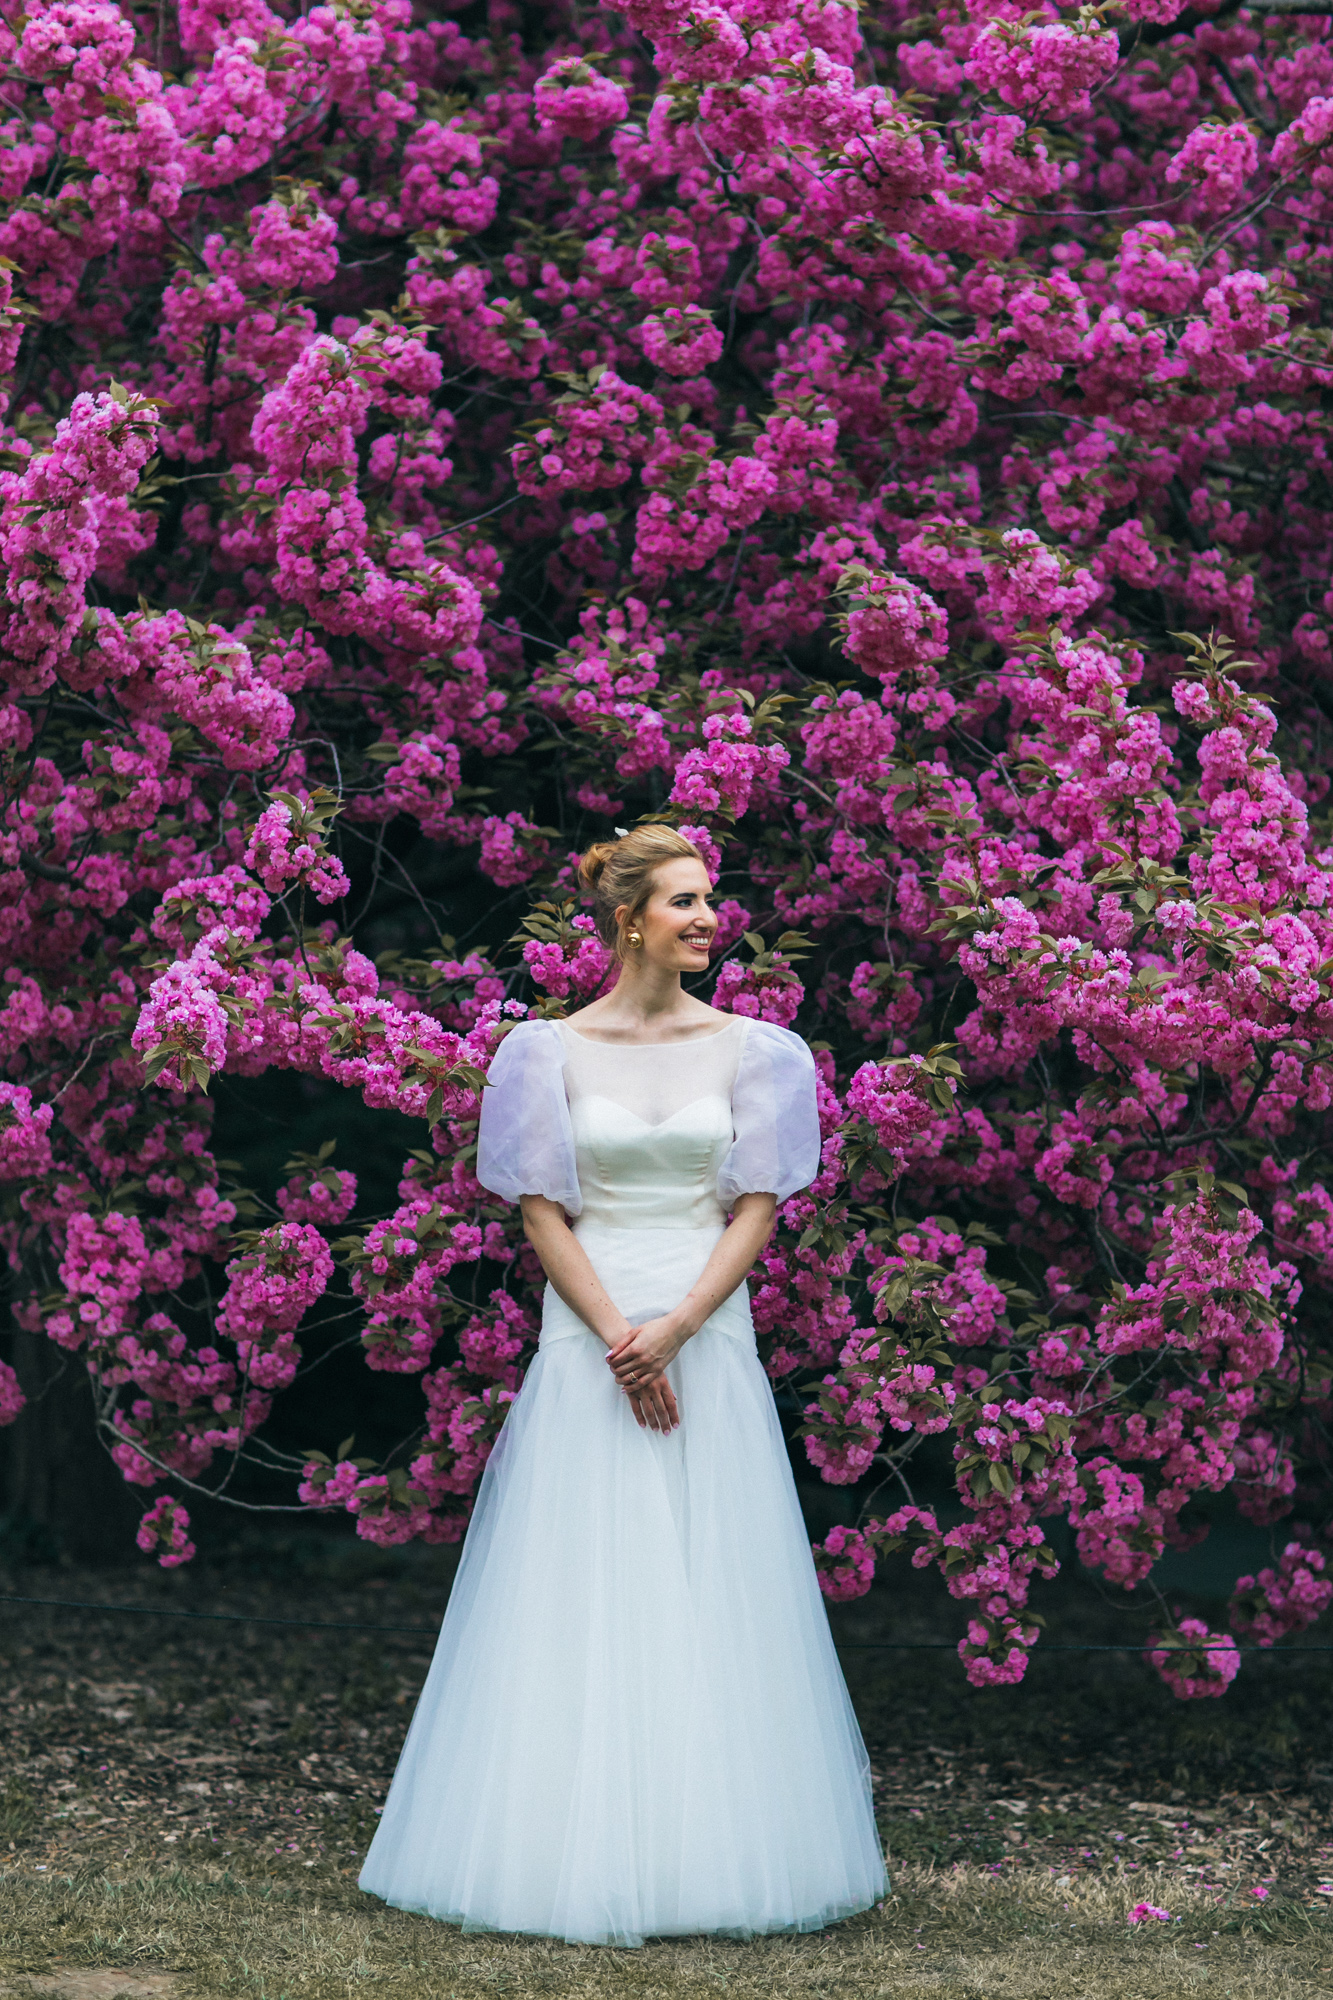 New York Wedding Photographer Boris Zaretsky Botanical Gardens Wedding Mollie Paul 5X2A4245 copy.jpg